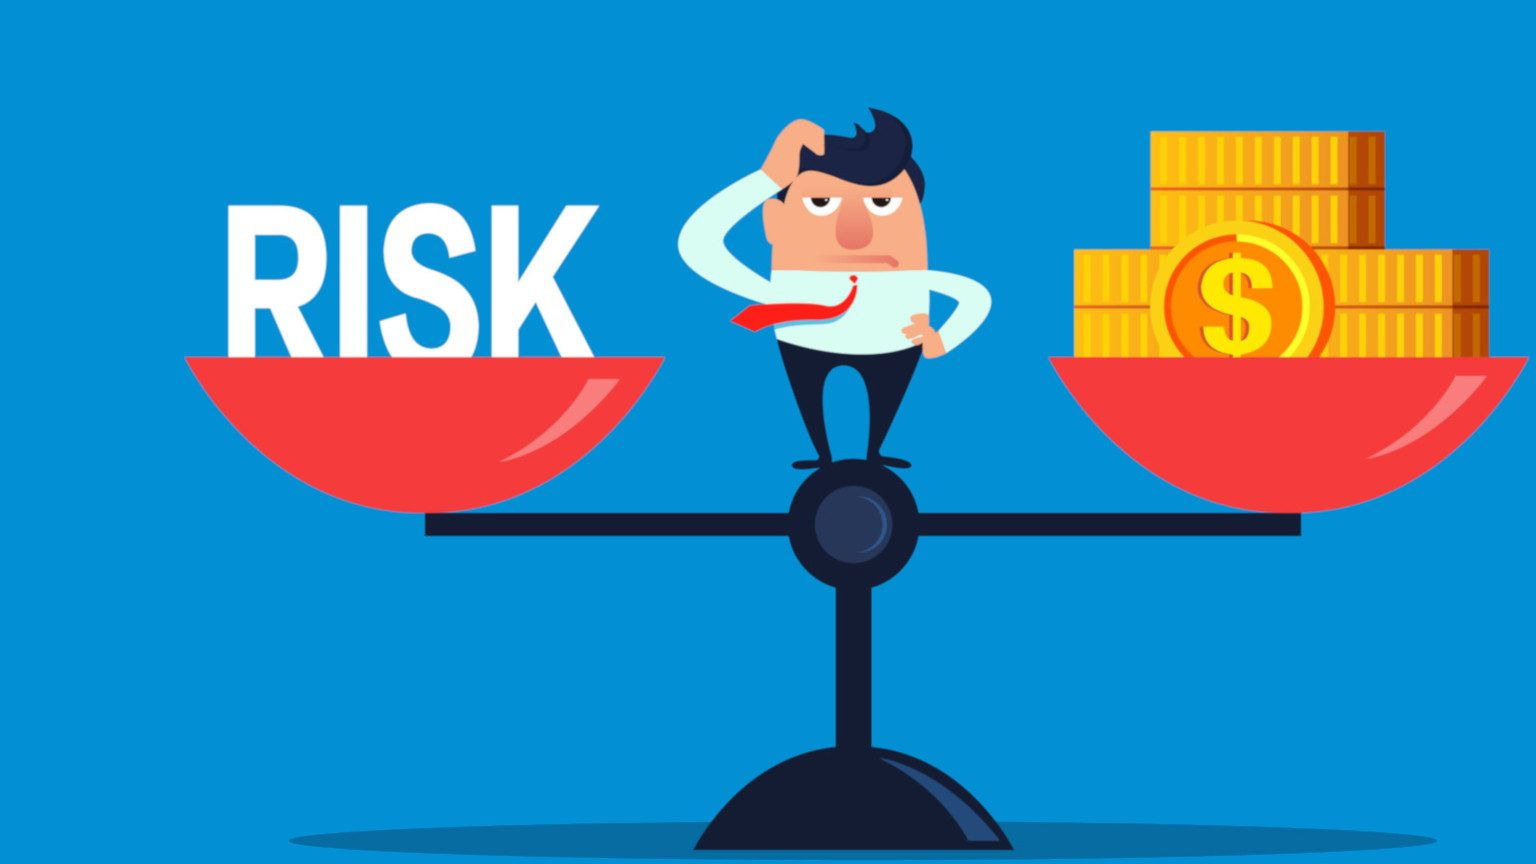 Cartoon of business man on scale weighing risk and money